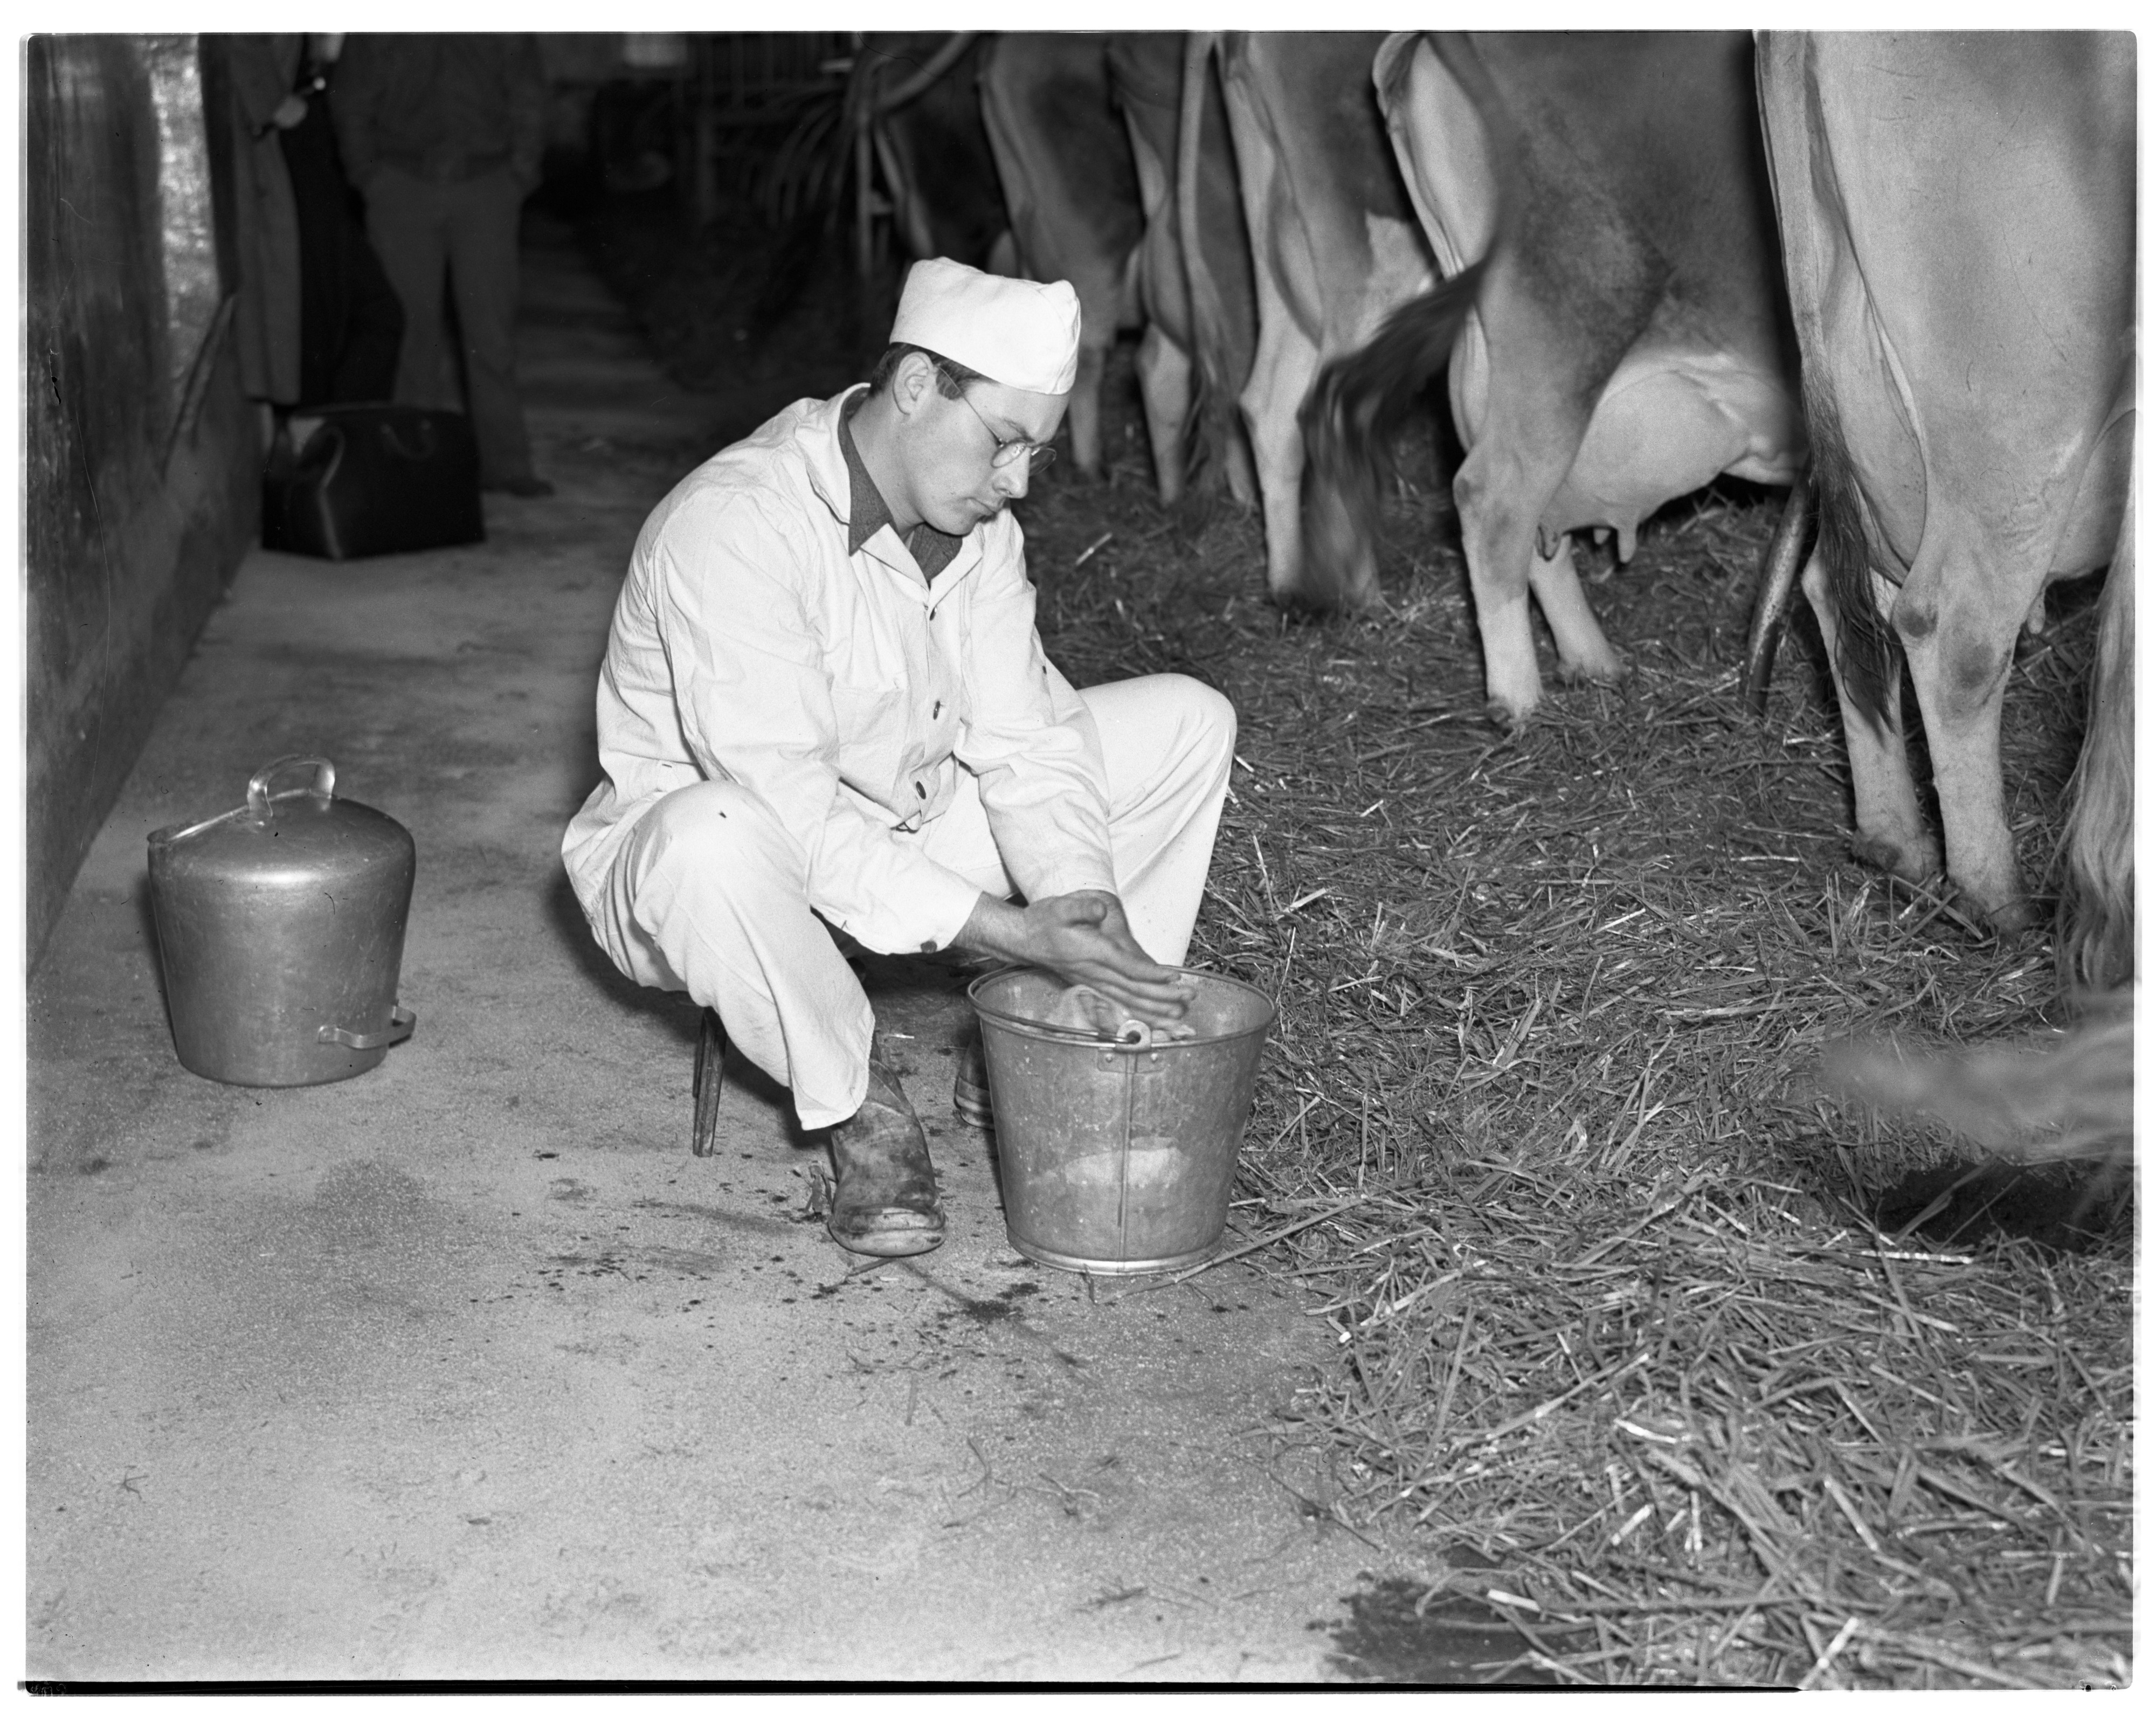 Man with Pail - National Dairy Week  image